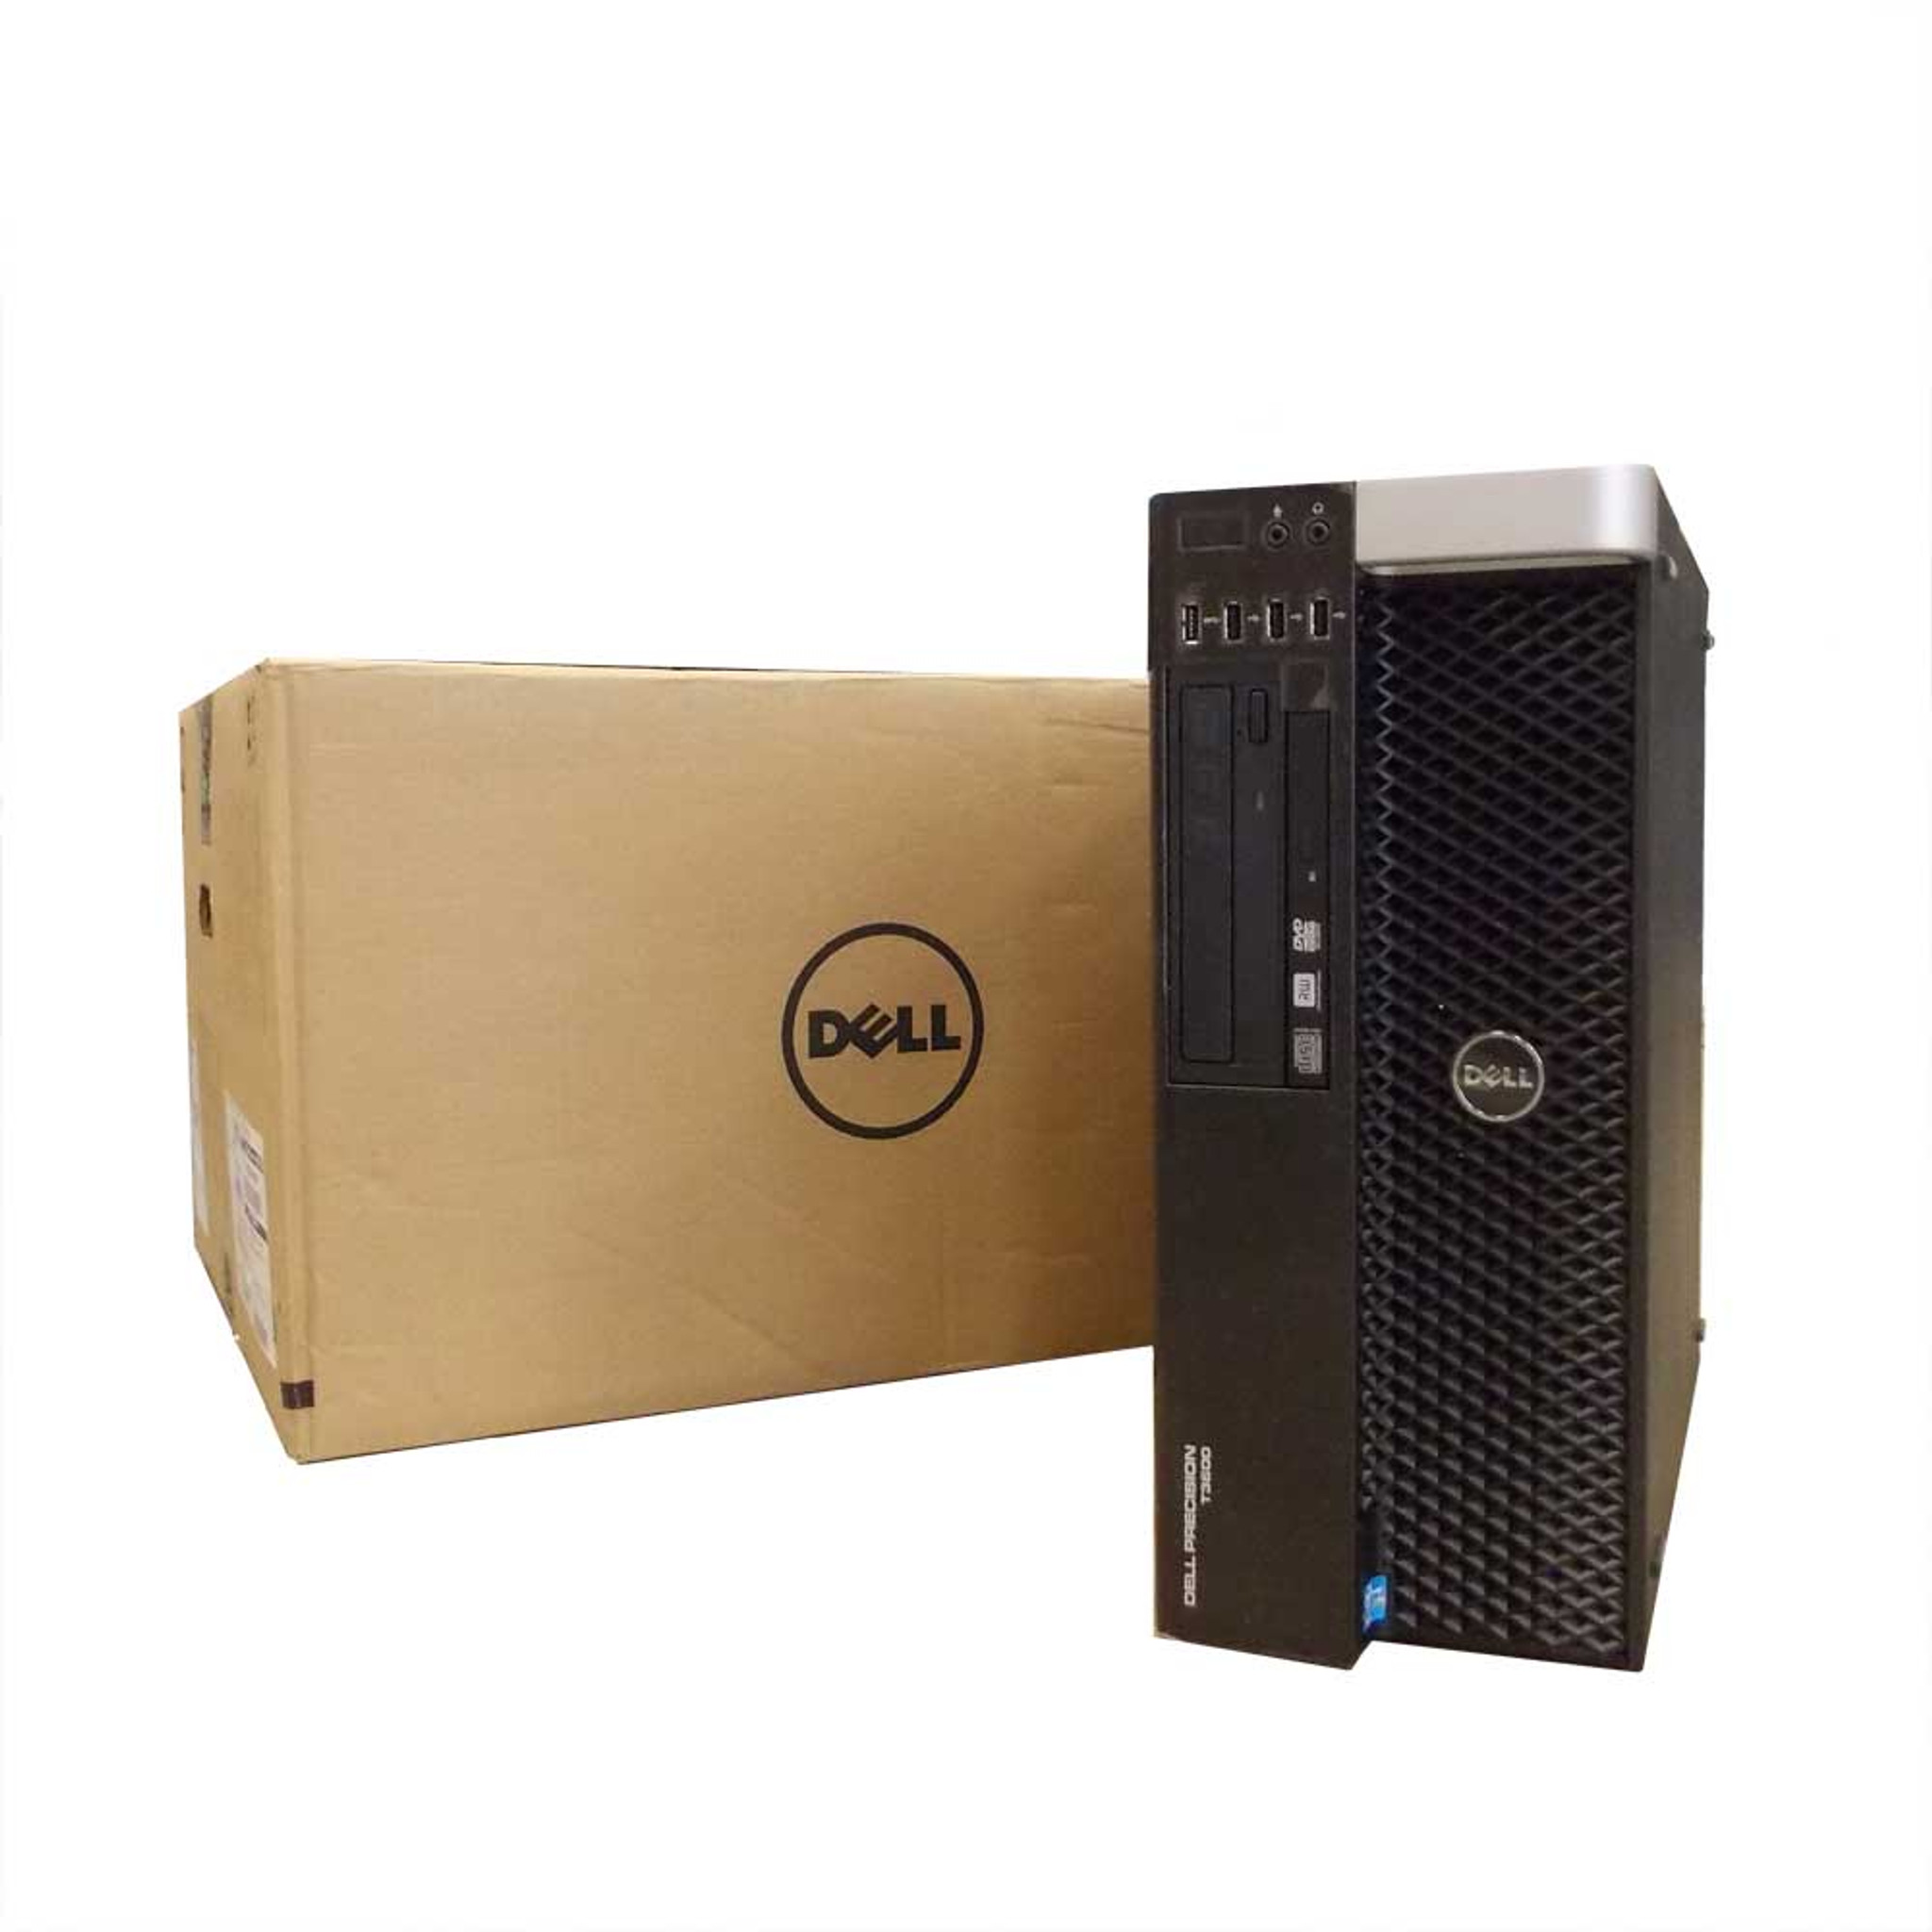 Dell Precision T3600 Workstation - New